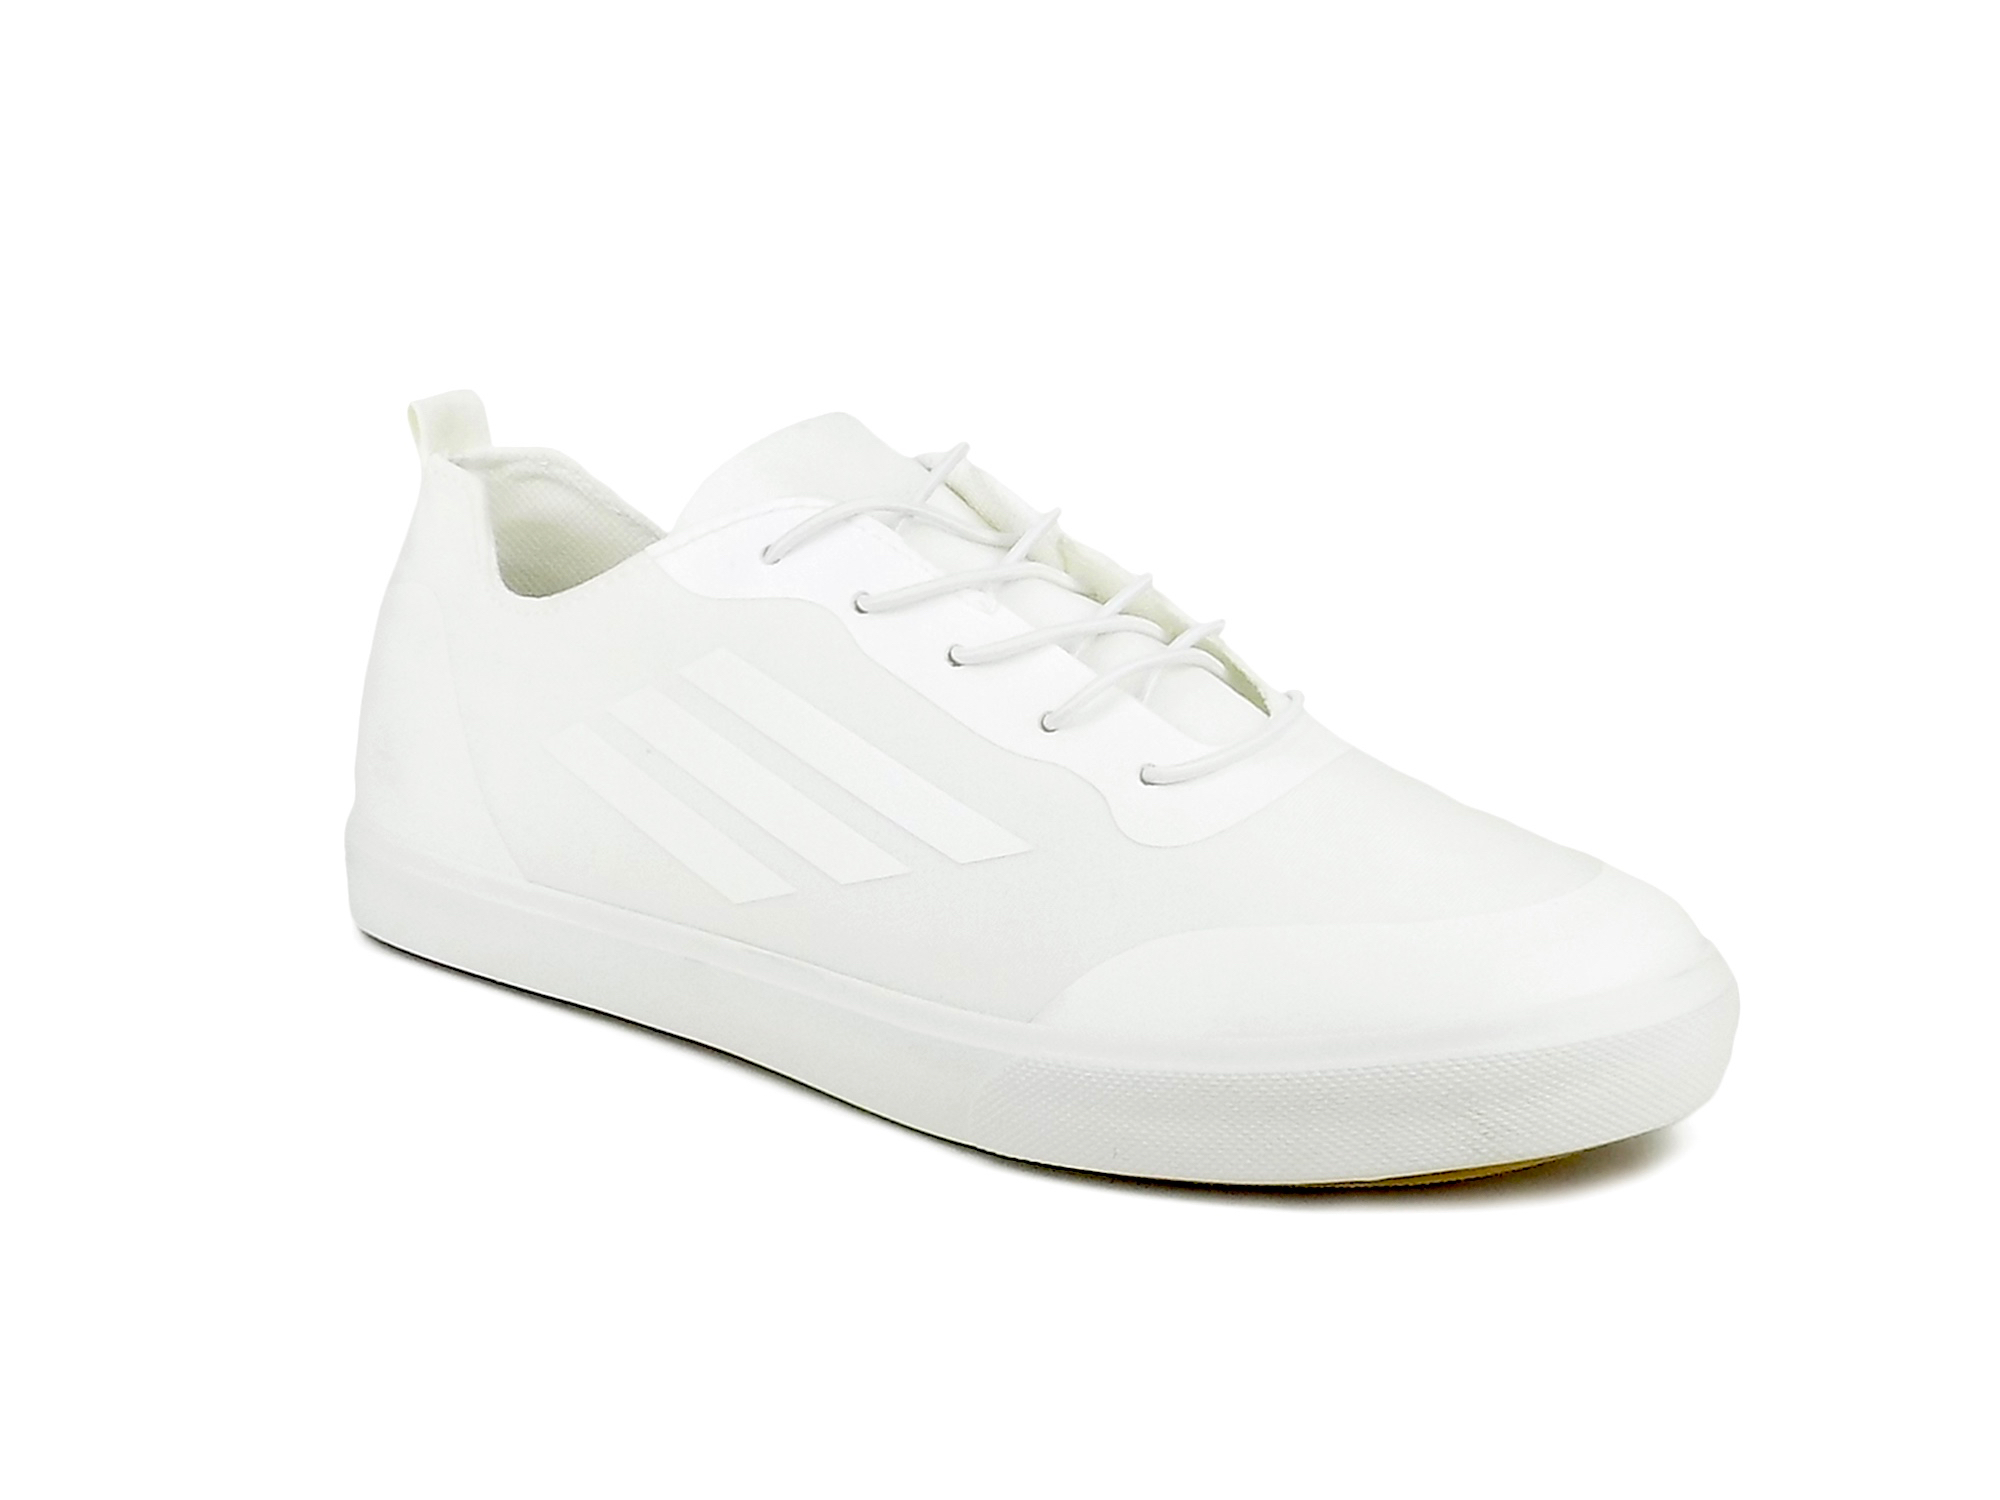 vantagesales Ripley Magnet Series White Leatherette Casual Shoes